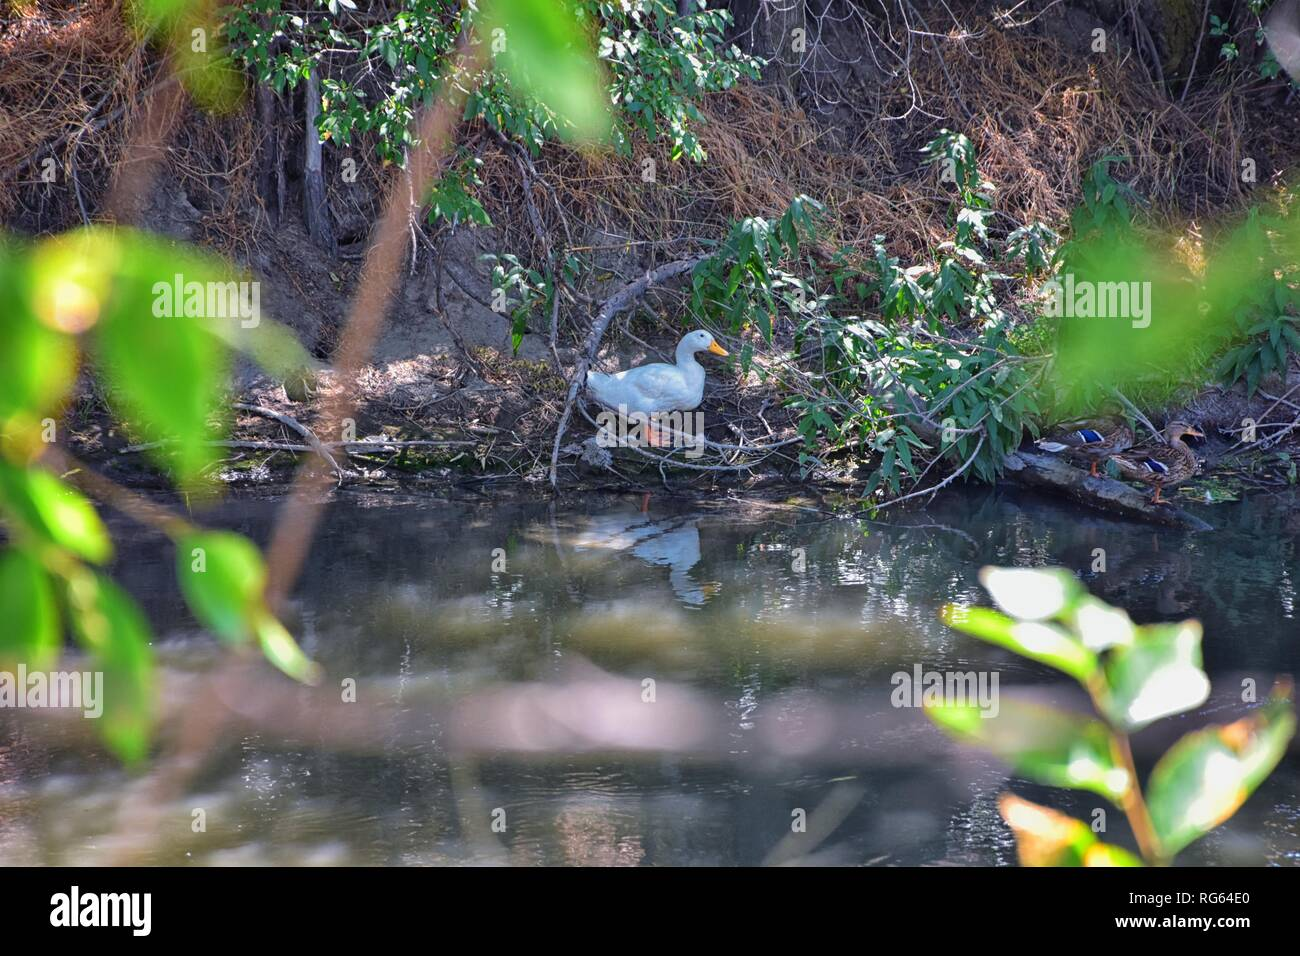 Ducks (Anatidae) swimming and resting in the water and banks of the Jordan River Trail with surrounding trees, Russian Olive, cottonwood and muddy str - Stock Image